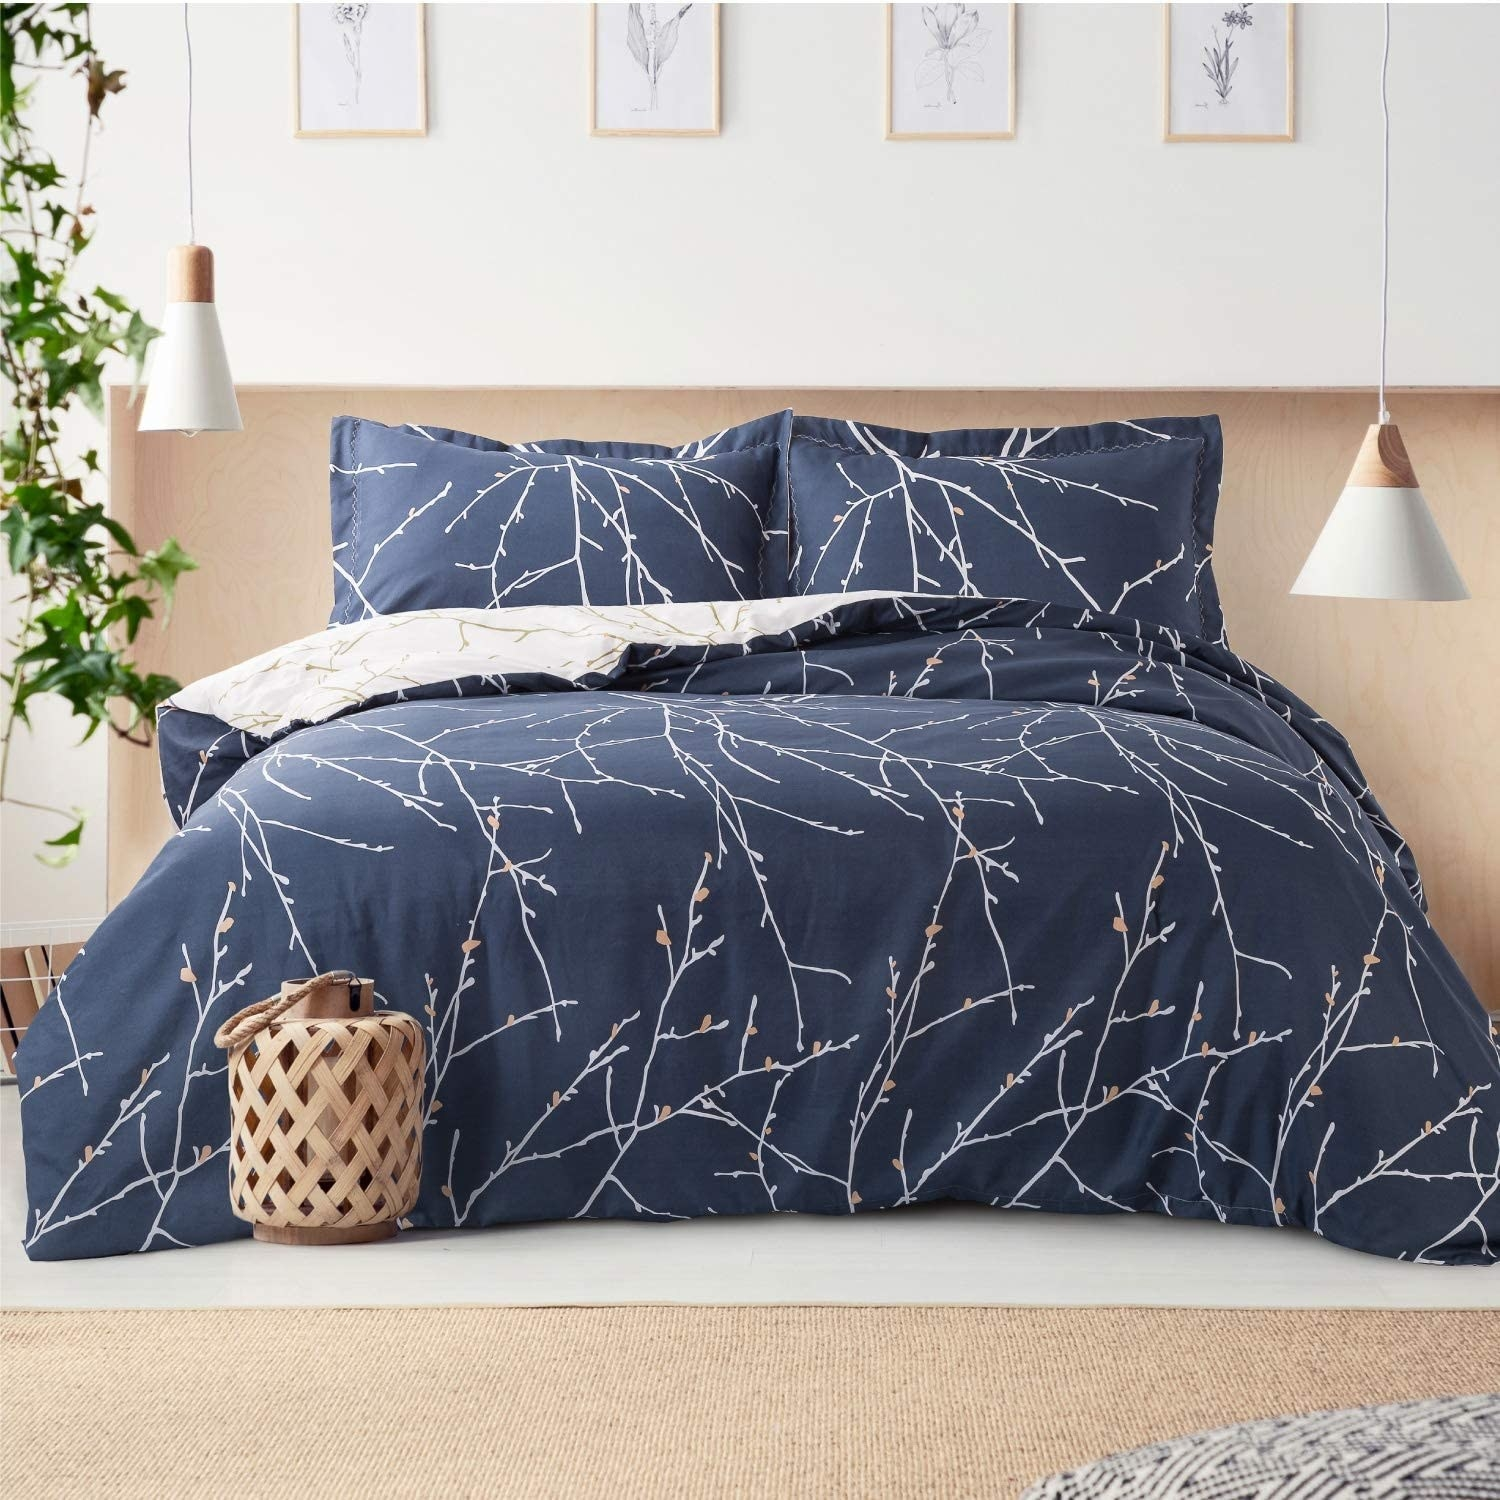 the navy blue bed set with white tree branches all over it on a bed